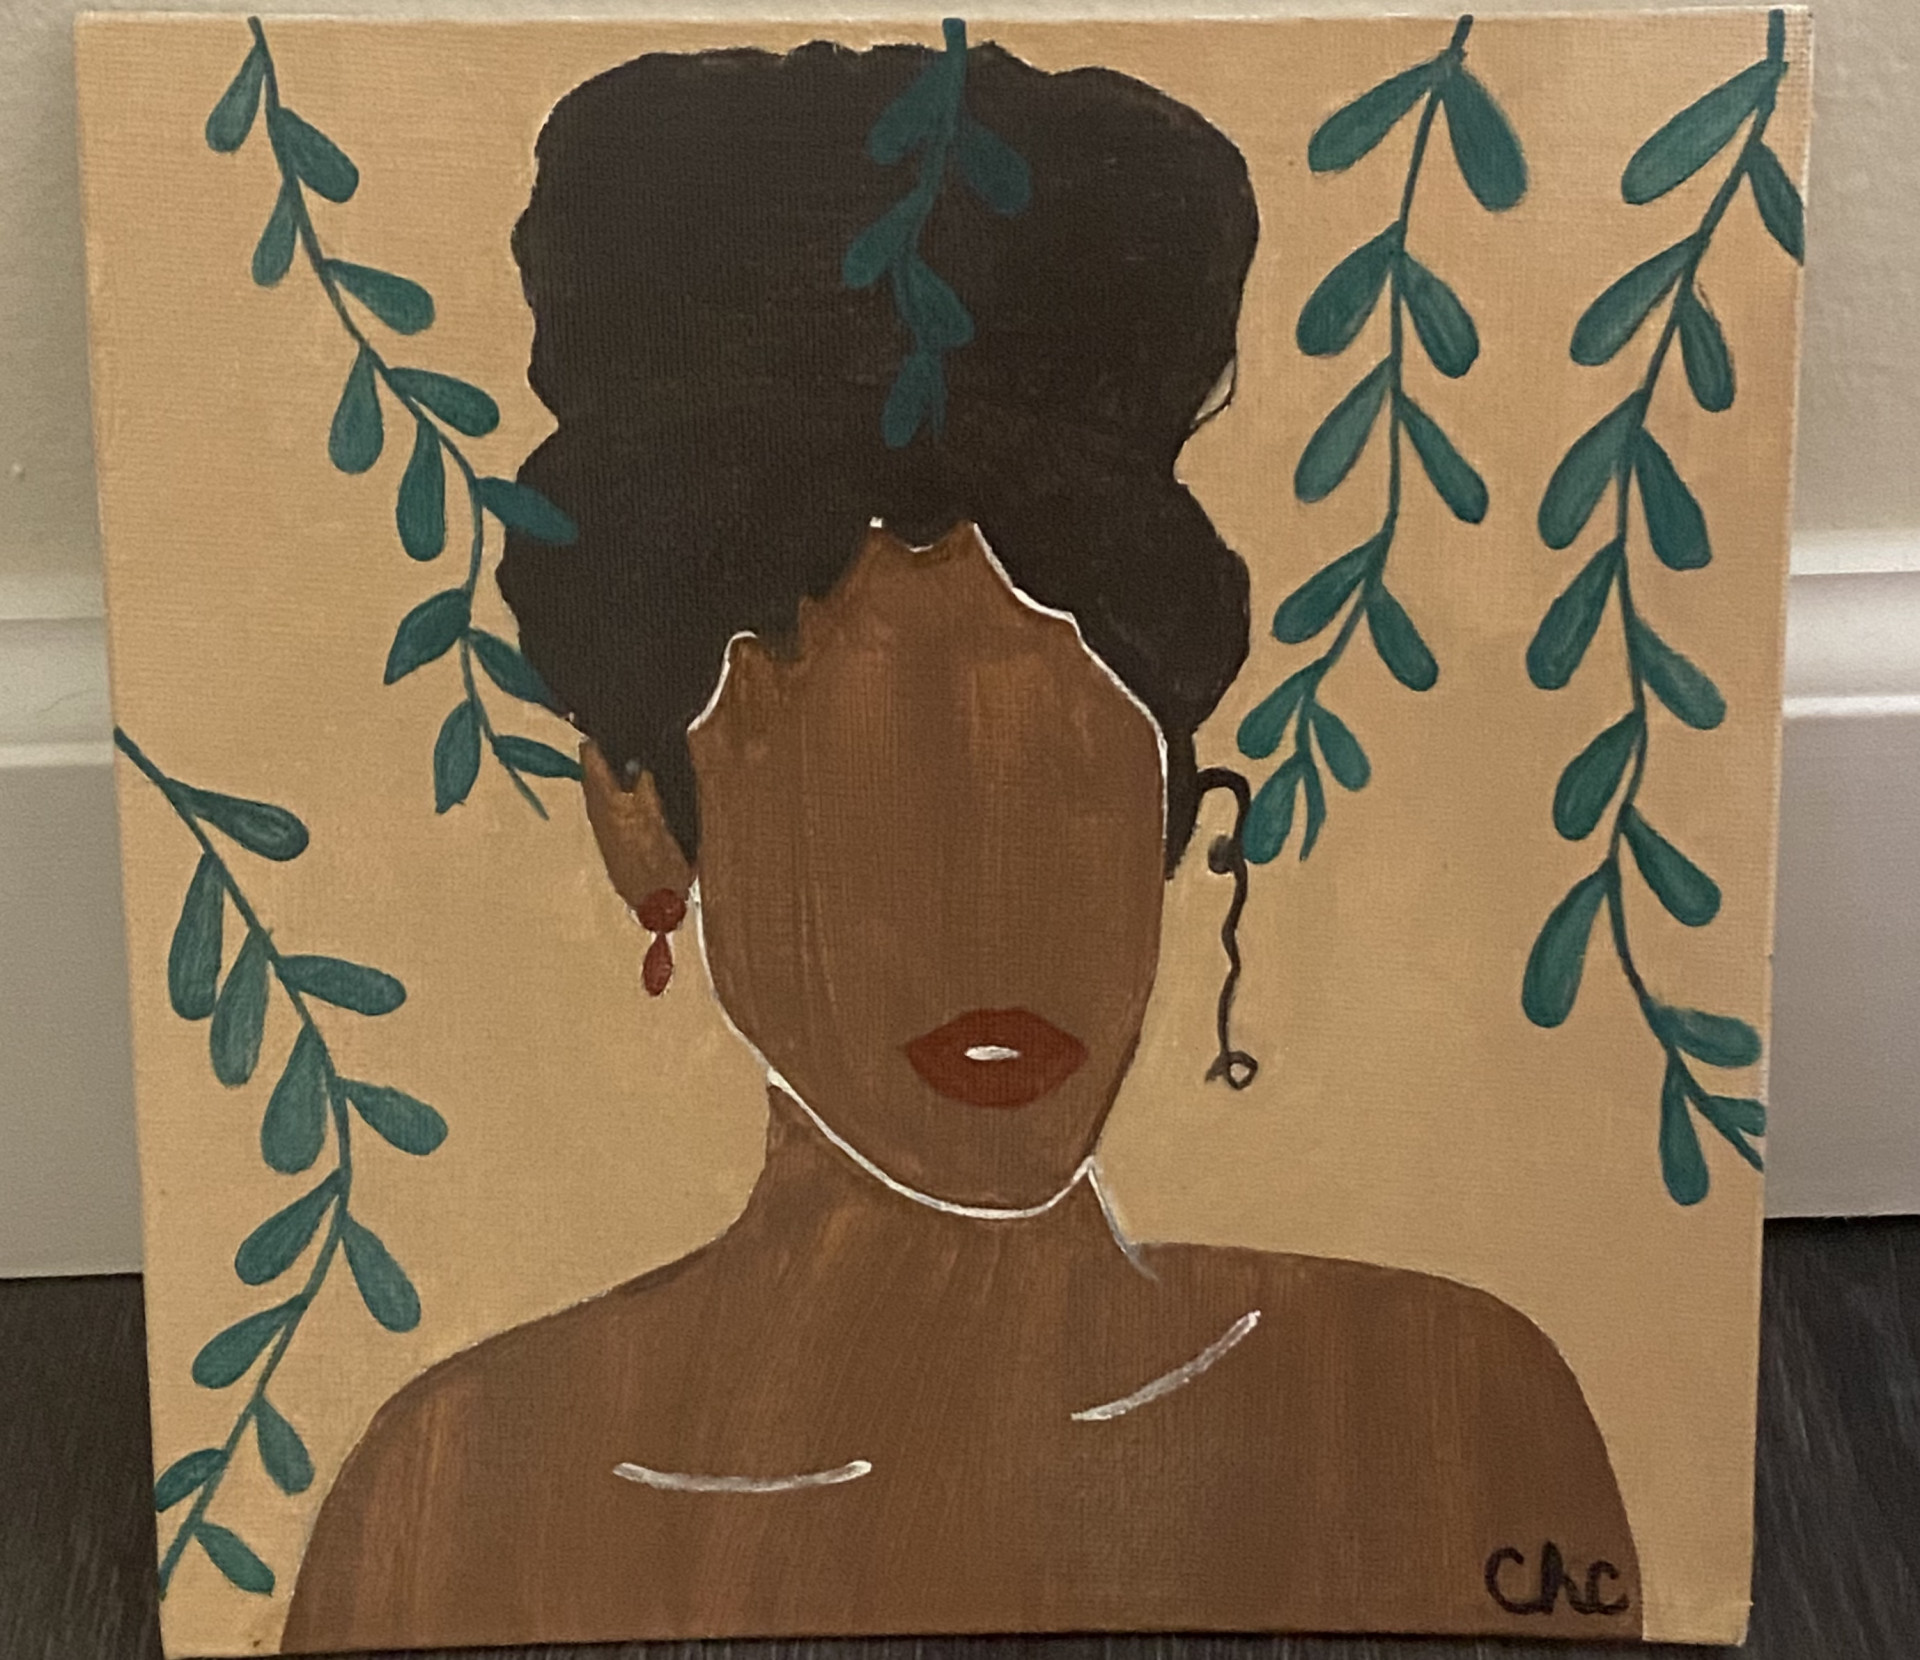 Girl with Vines